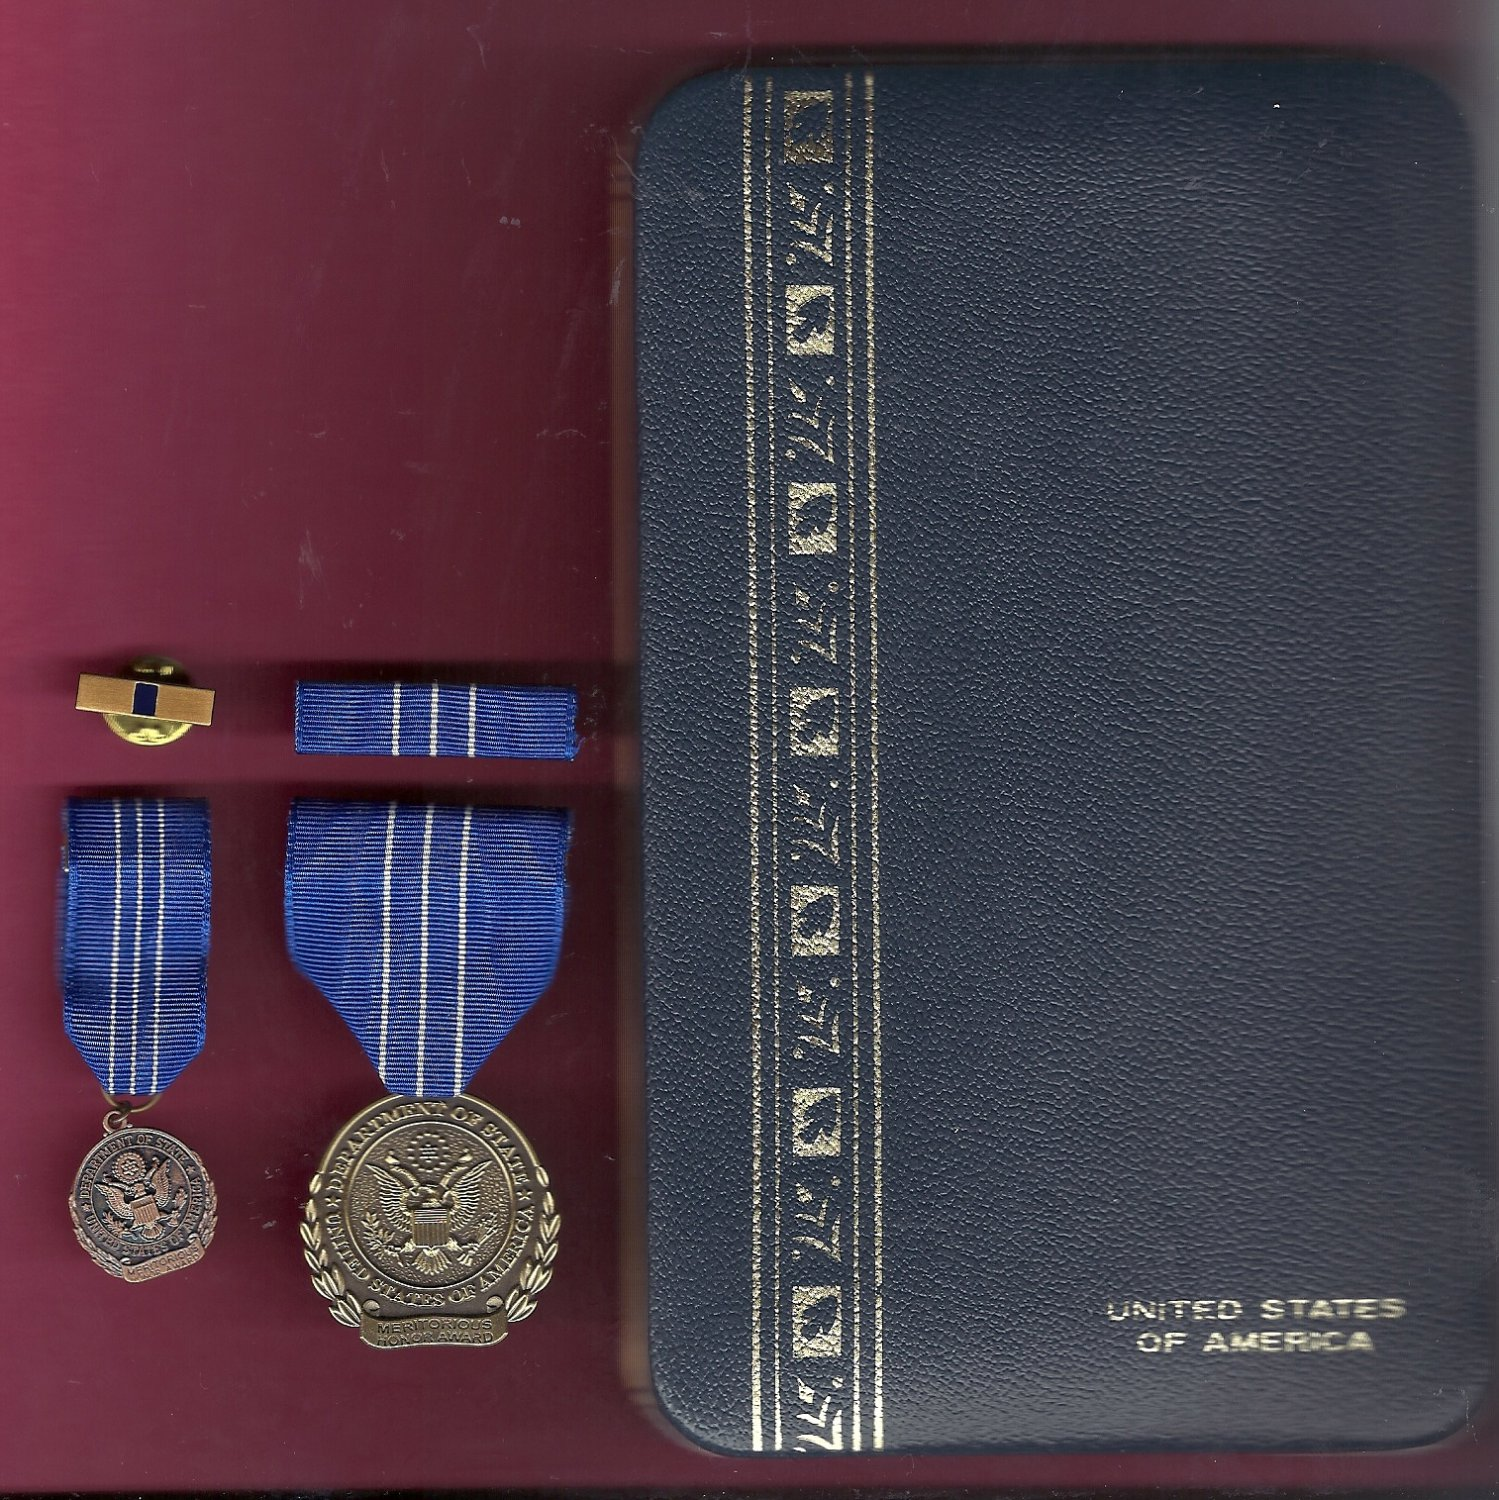 State Department Meritorious Honor Award medal in case with mini, lapel pin and ribbon bar